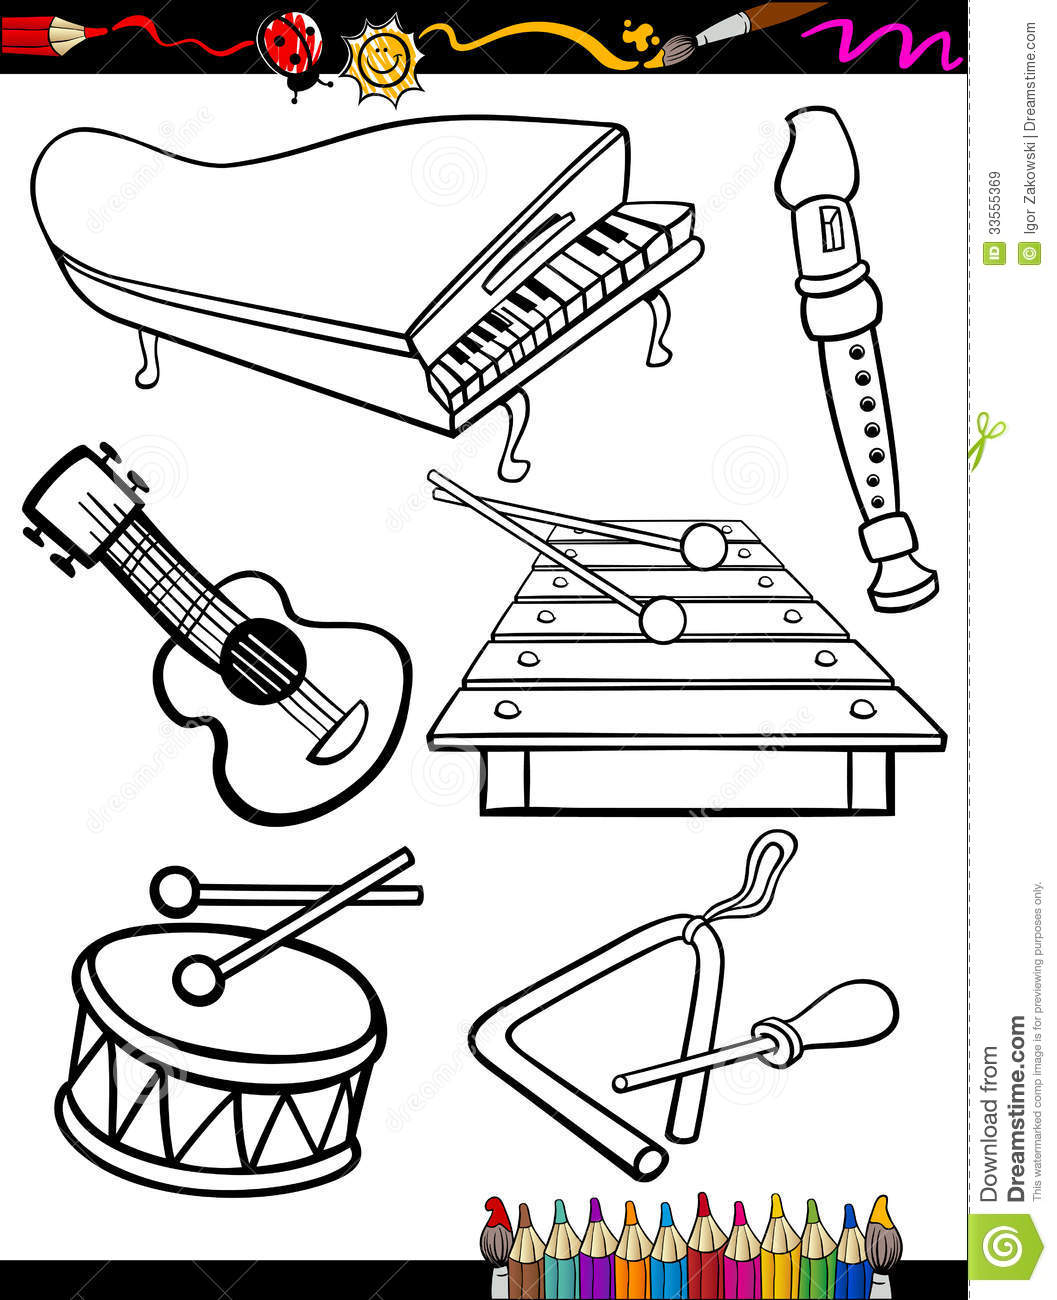 free music instrument coloring pages - photo#12